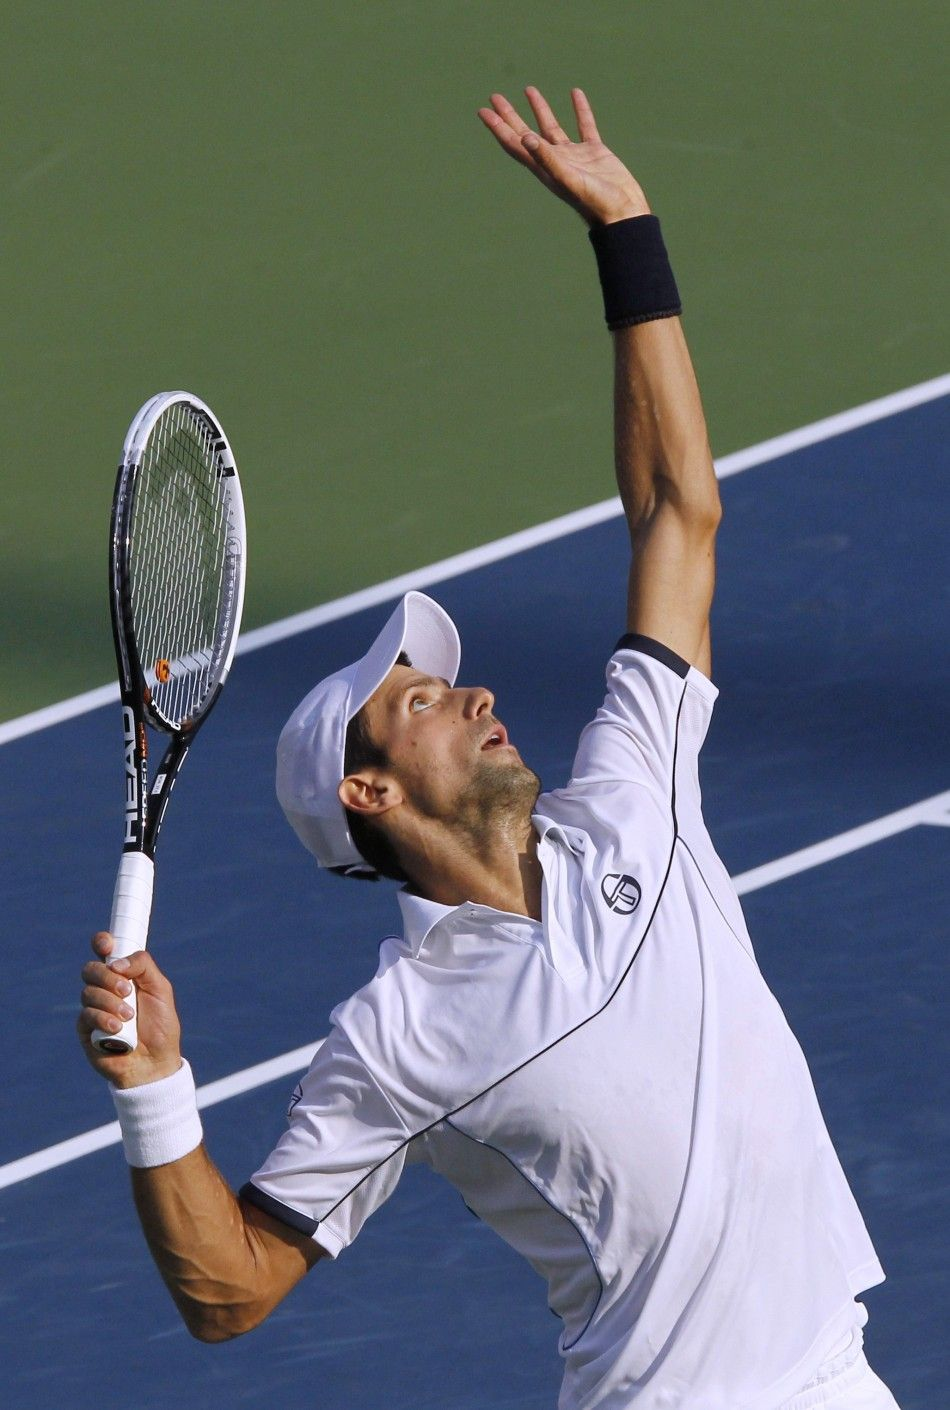 Novak Djokovic's Trophy/Power position on serve | Top ...